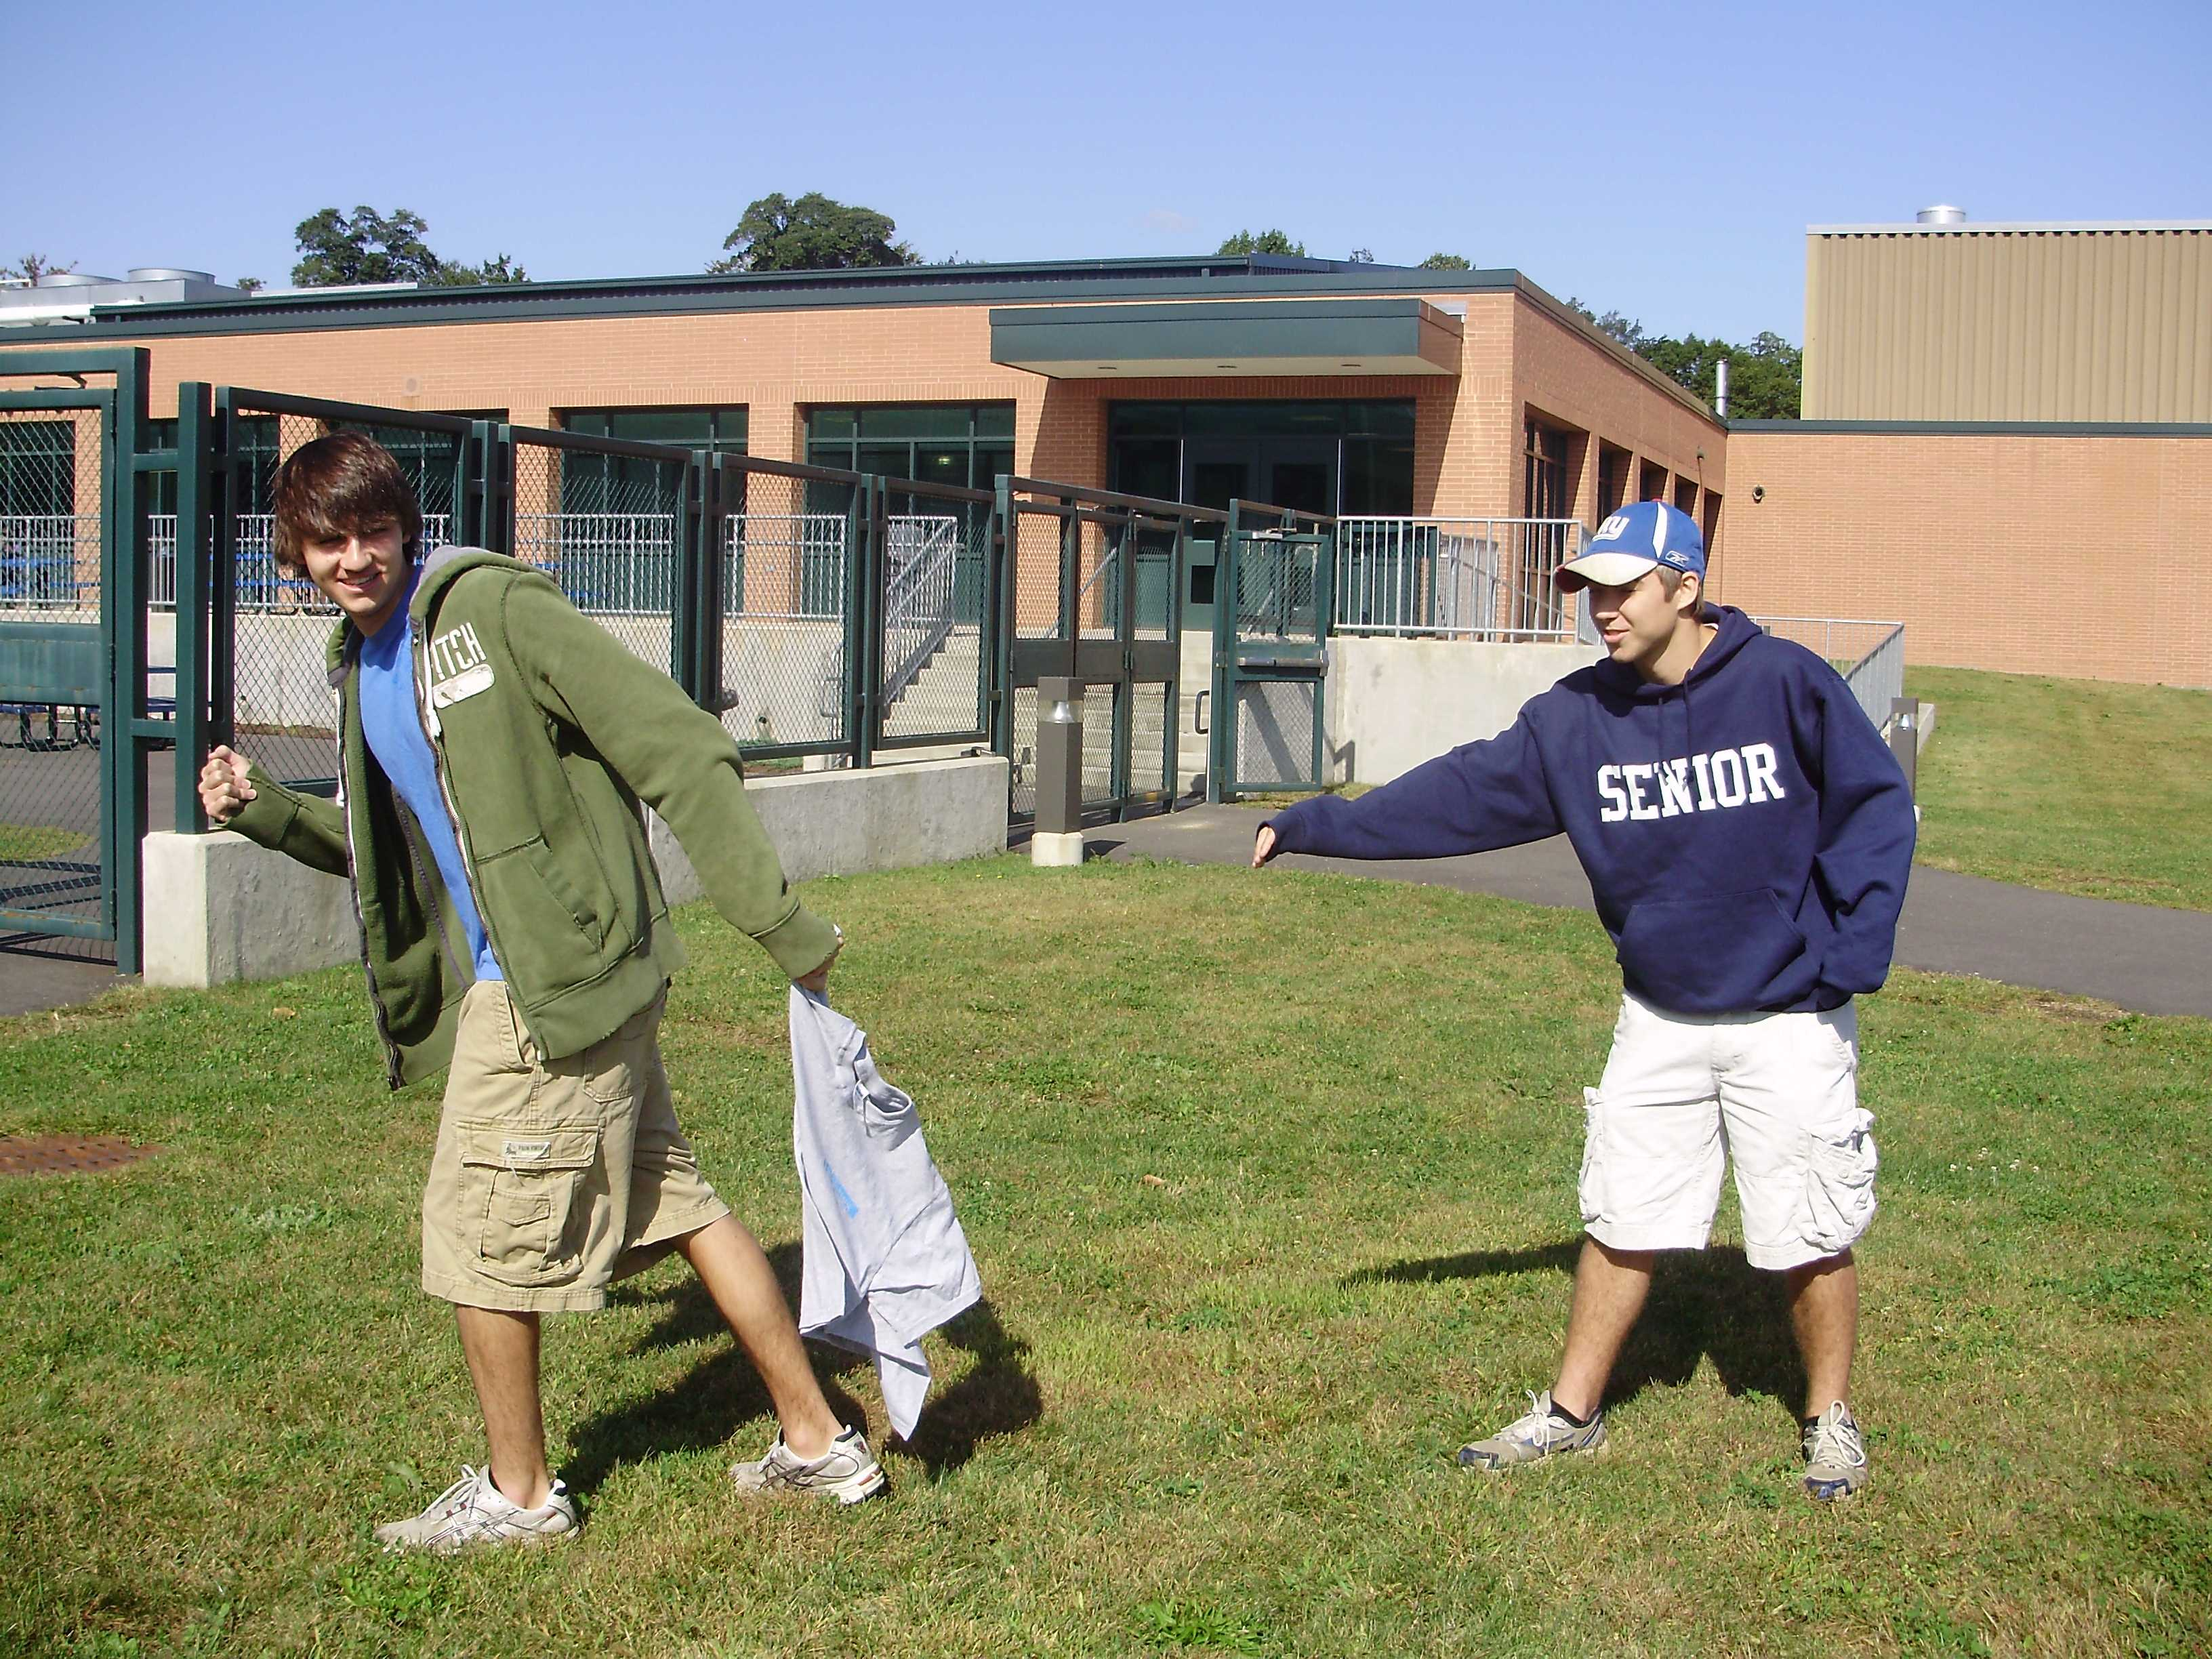 Ryan Smith '10 (left) stimulates an aggressive move in the game with Alex Werner '10. | Photo by Lila Epstein '10